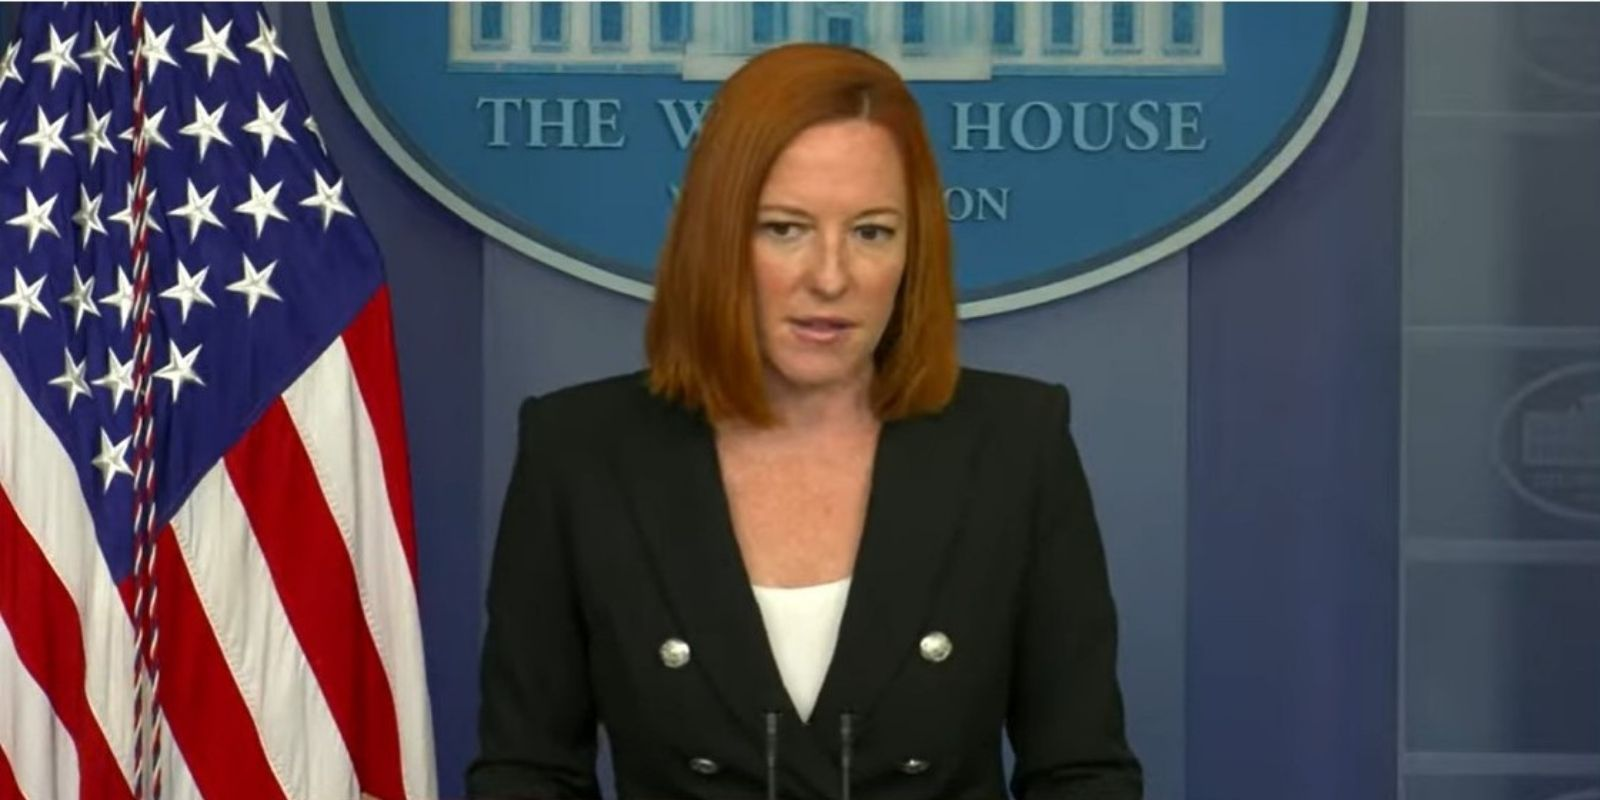 WATCH: Psaki says she would not characterize Texas Democrats' trip to Washington as a 'super-spreader event'